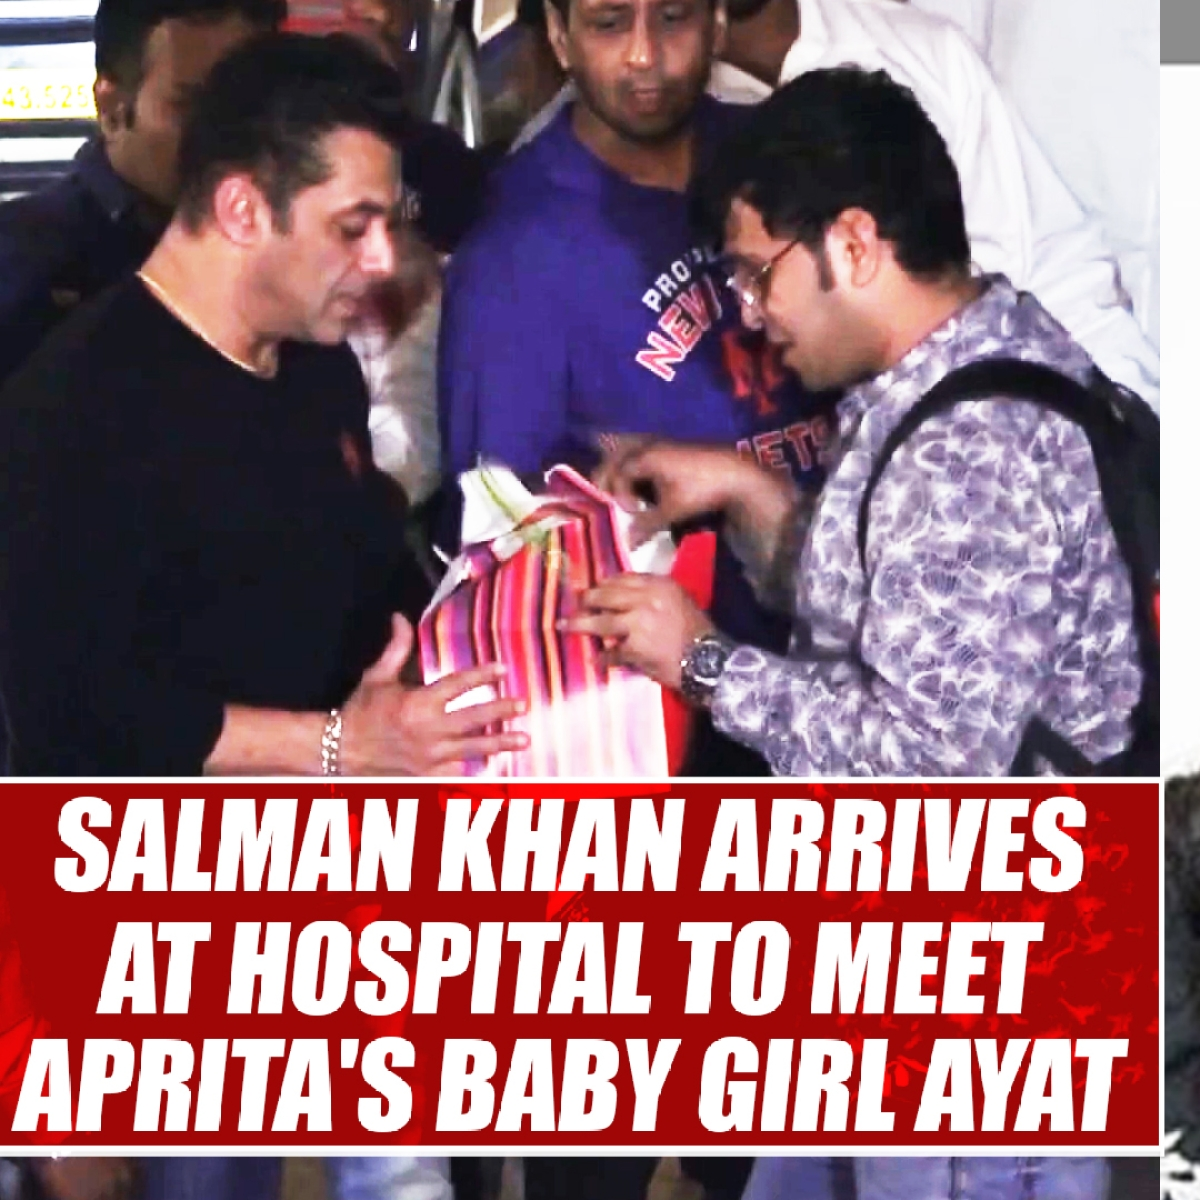 Salman Khan arrives at hospital to meet Aprita's baby girl Ayat